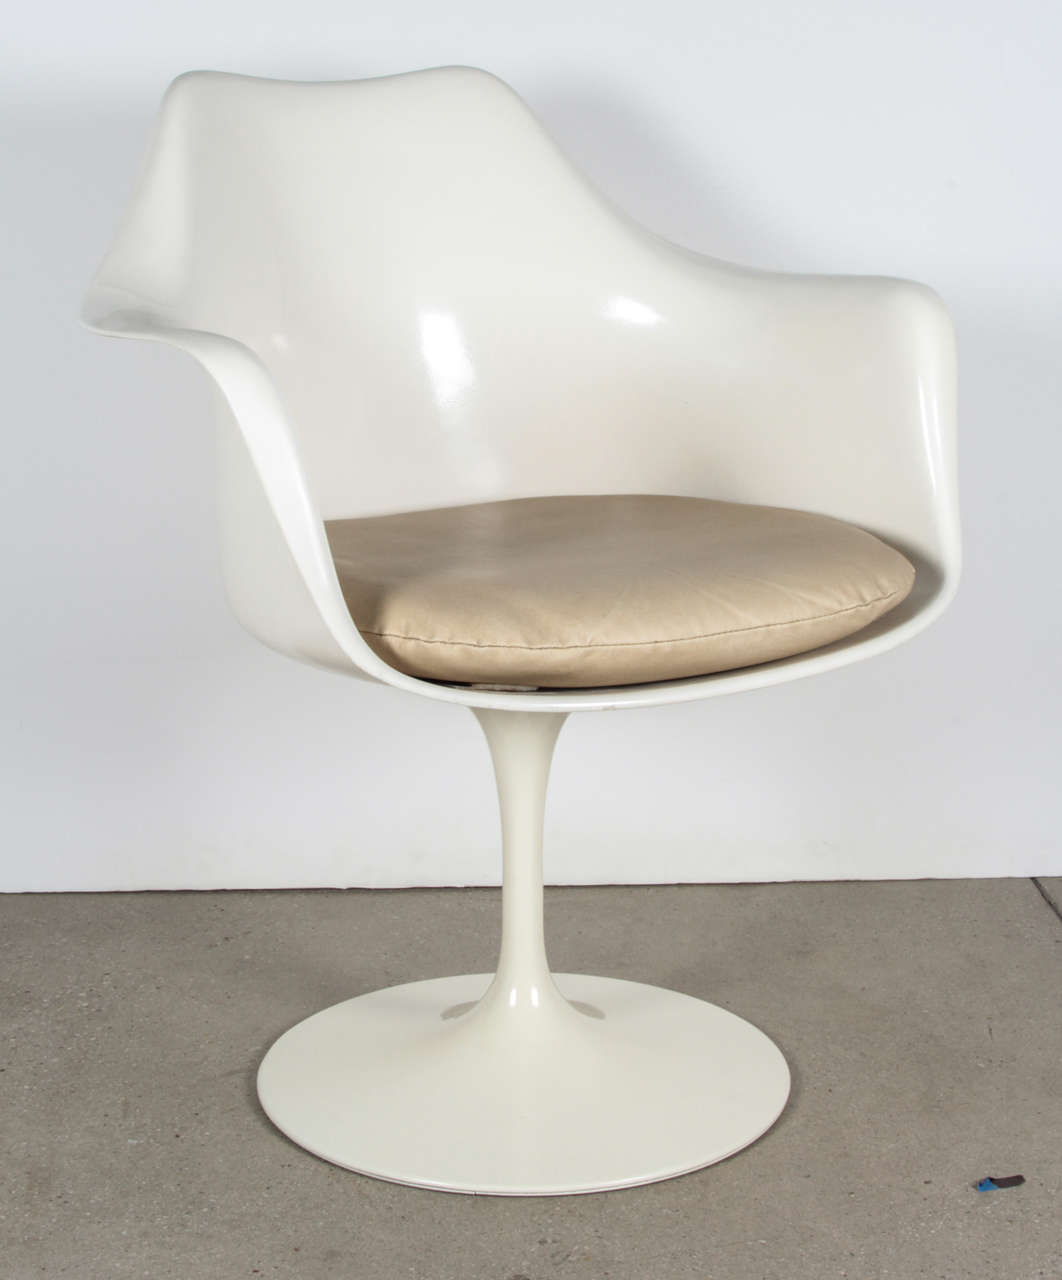 vintage tulip chair by saarinen for knoll international for sale at 1stdibs. Black Bedroom Furniture Sets. Home Design Ideas